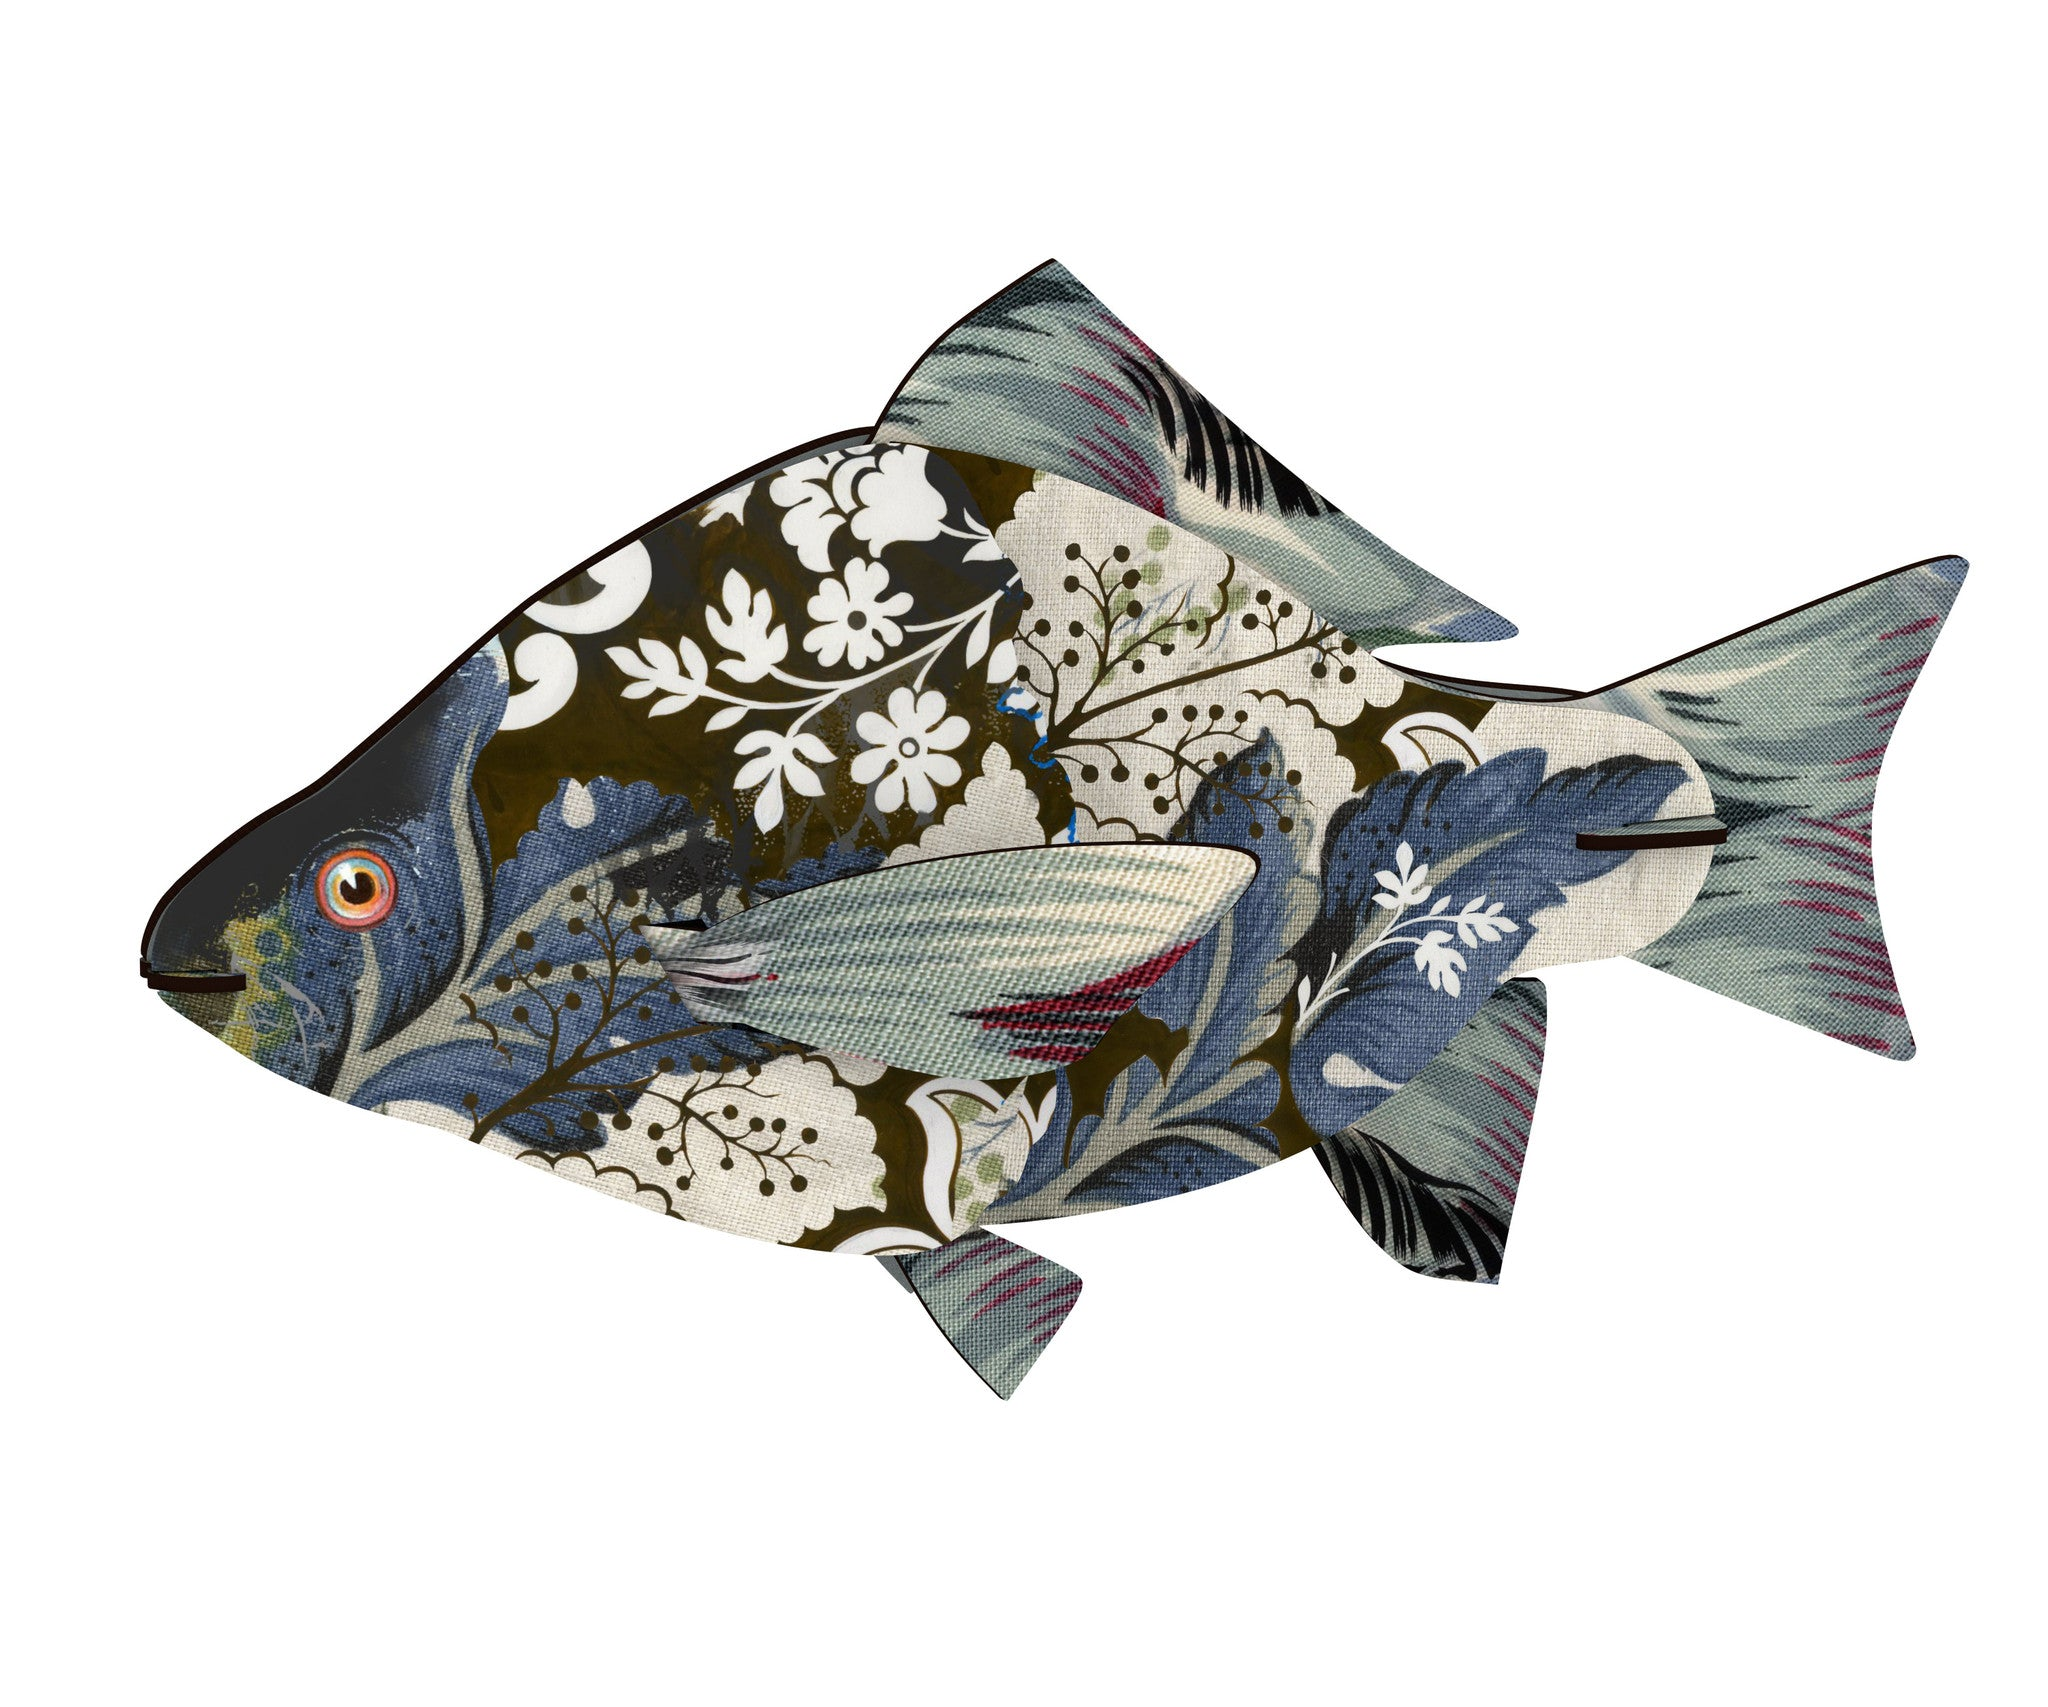 Fish - Carpe Diem, HOME DECOR, MIHO UNEXPECTED, - Fabrica